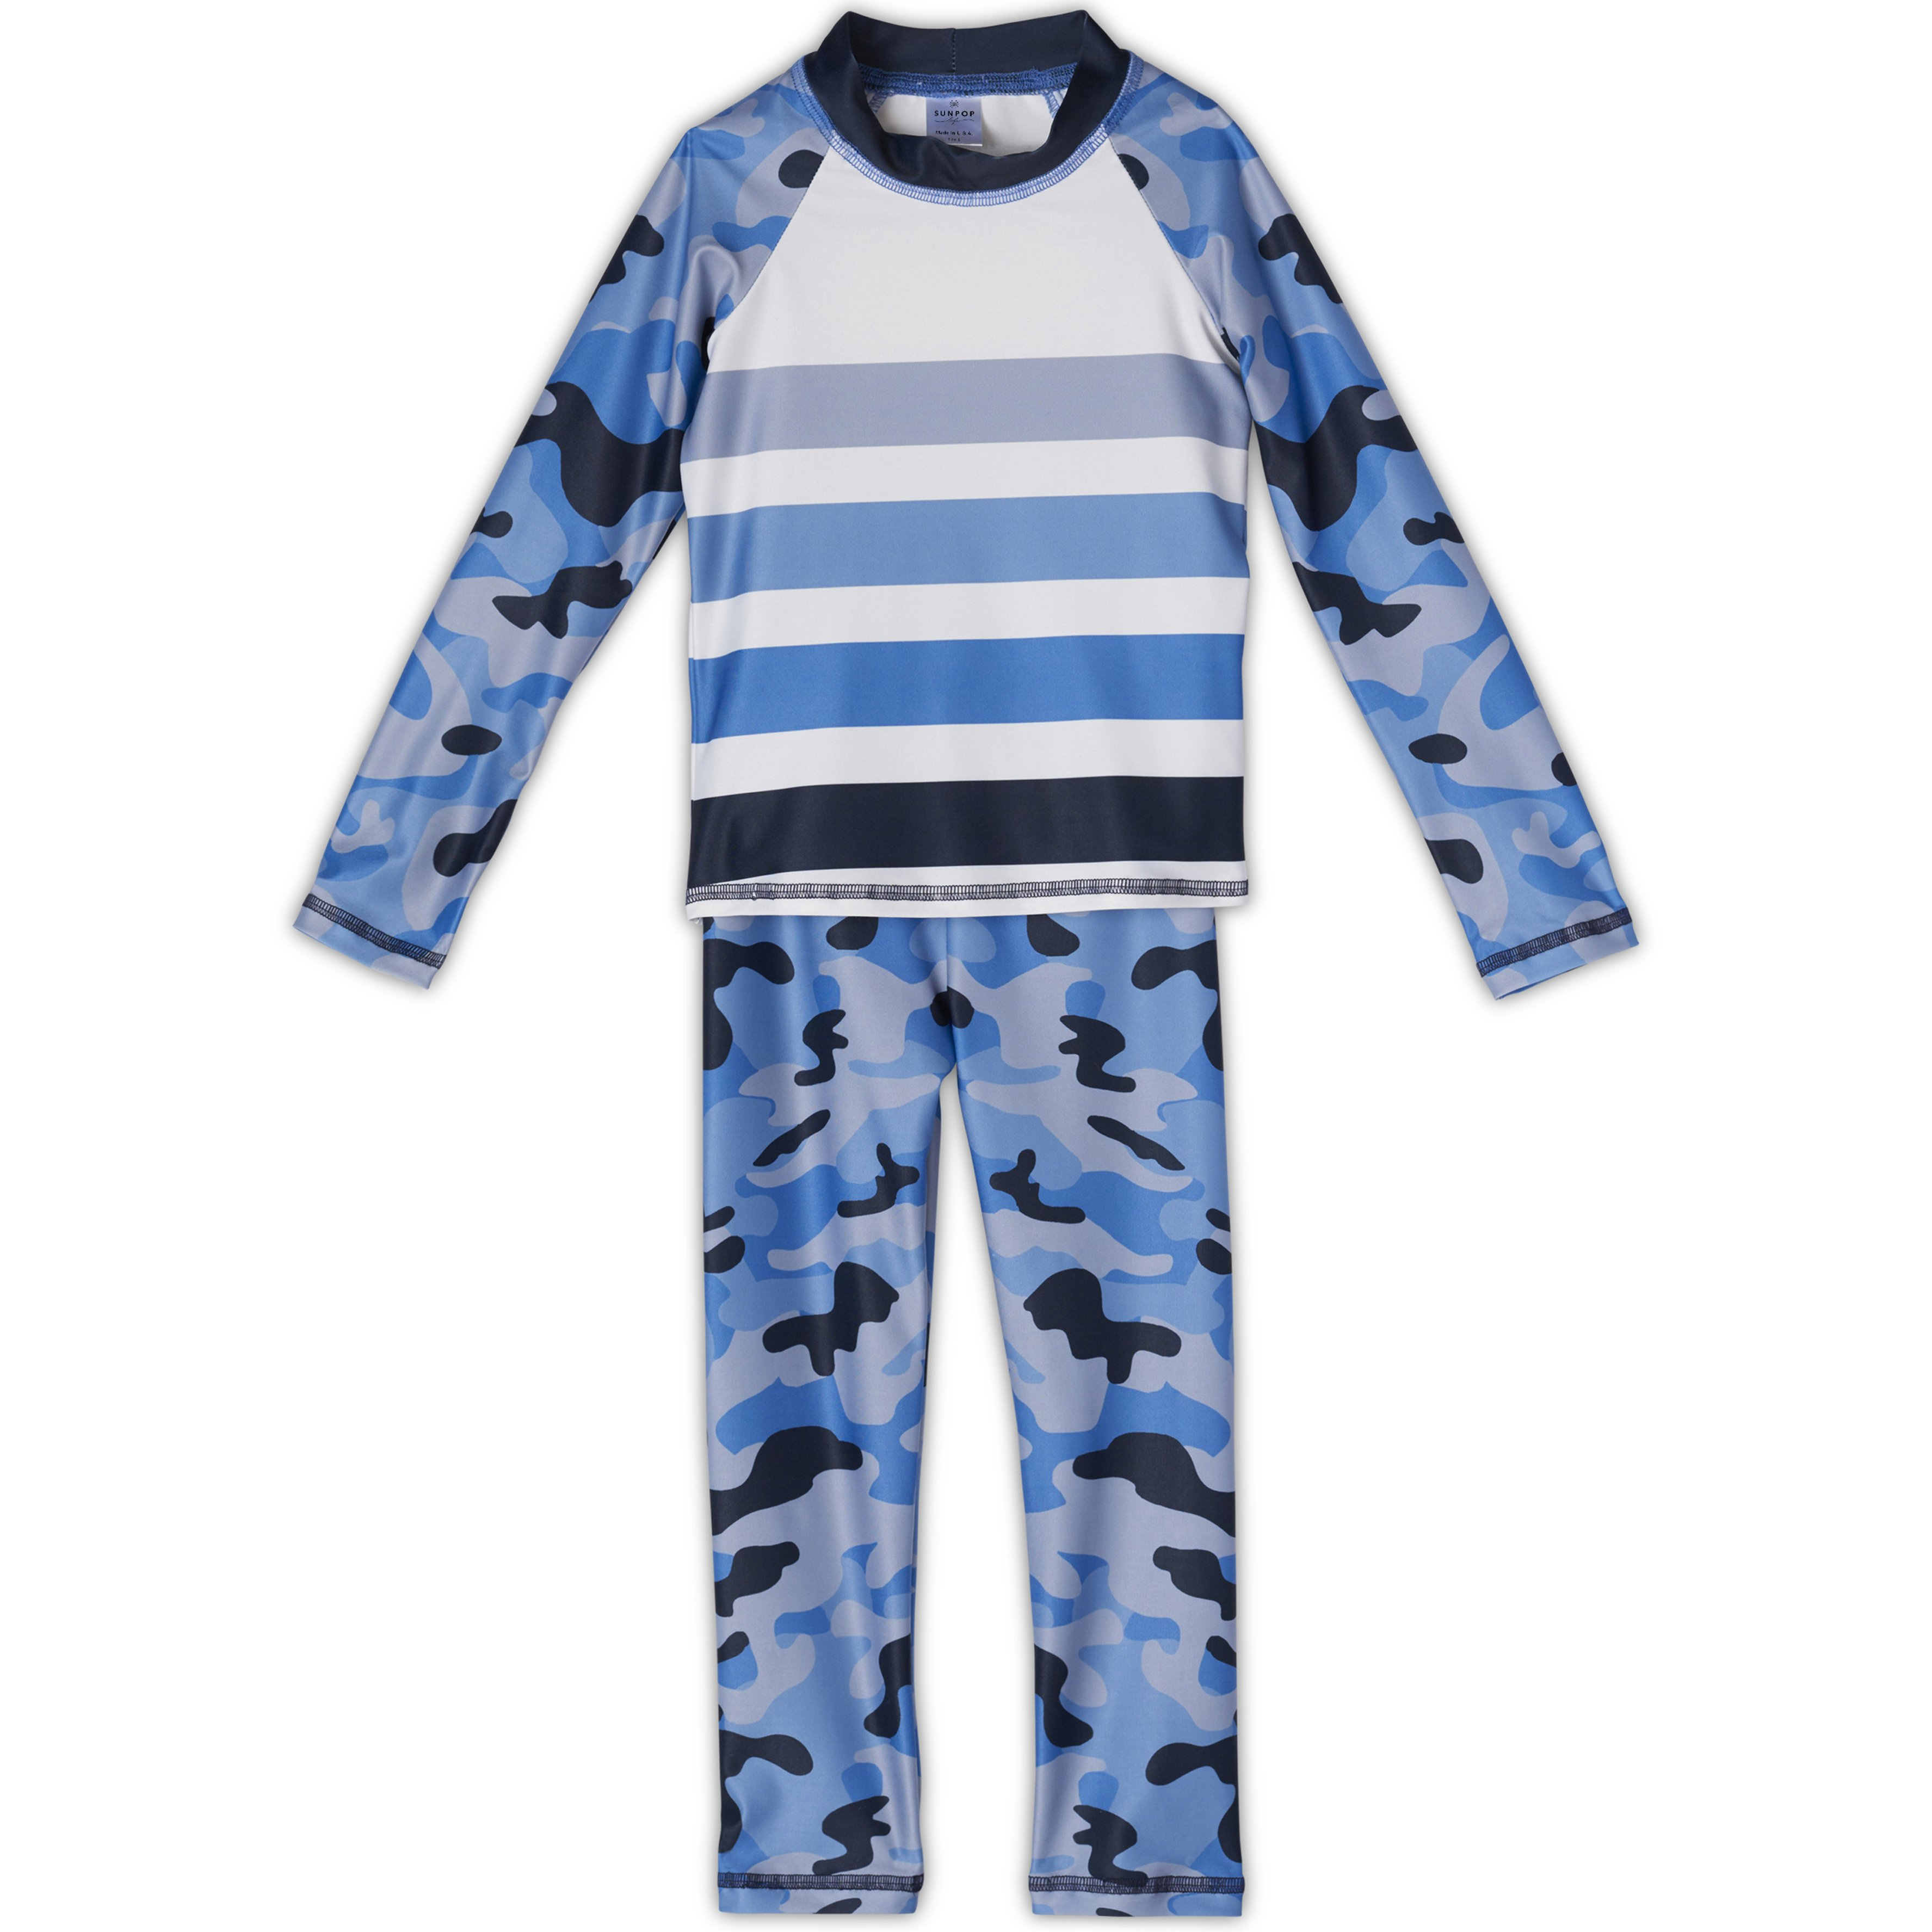 Blue Camo 2pc Rash Guard Set UPF 50+ for Girls